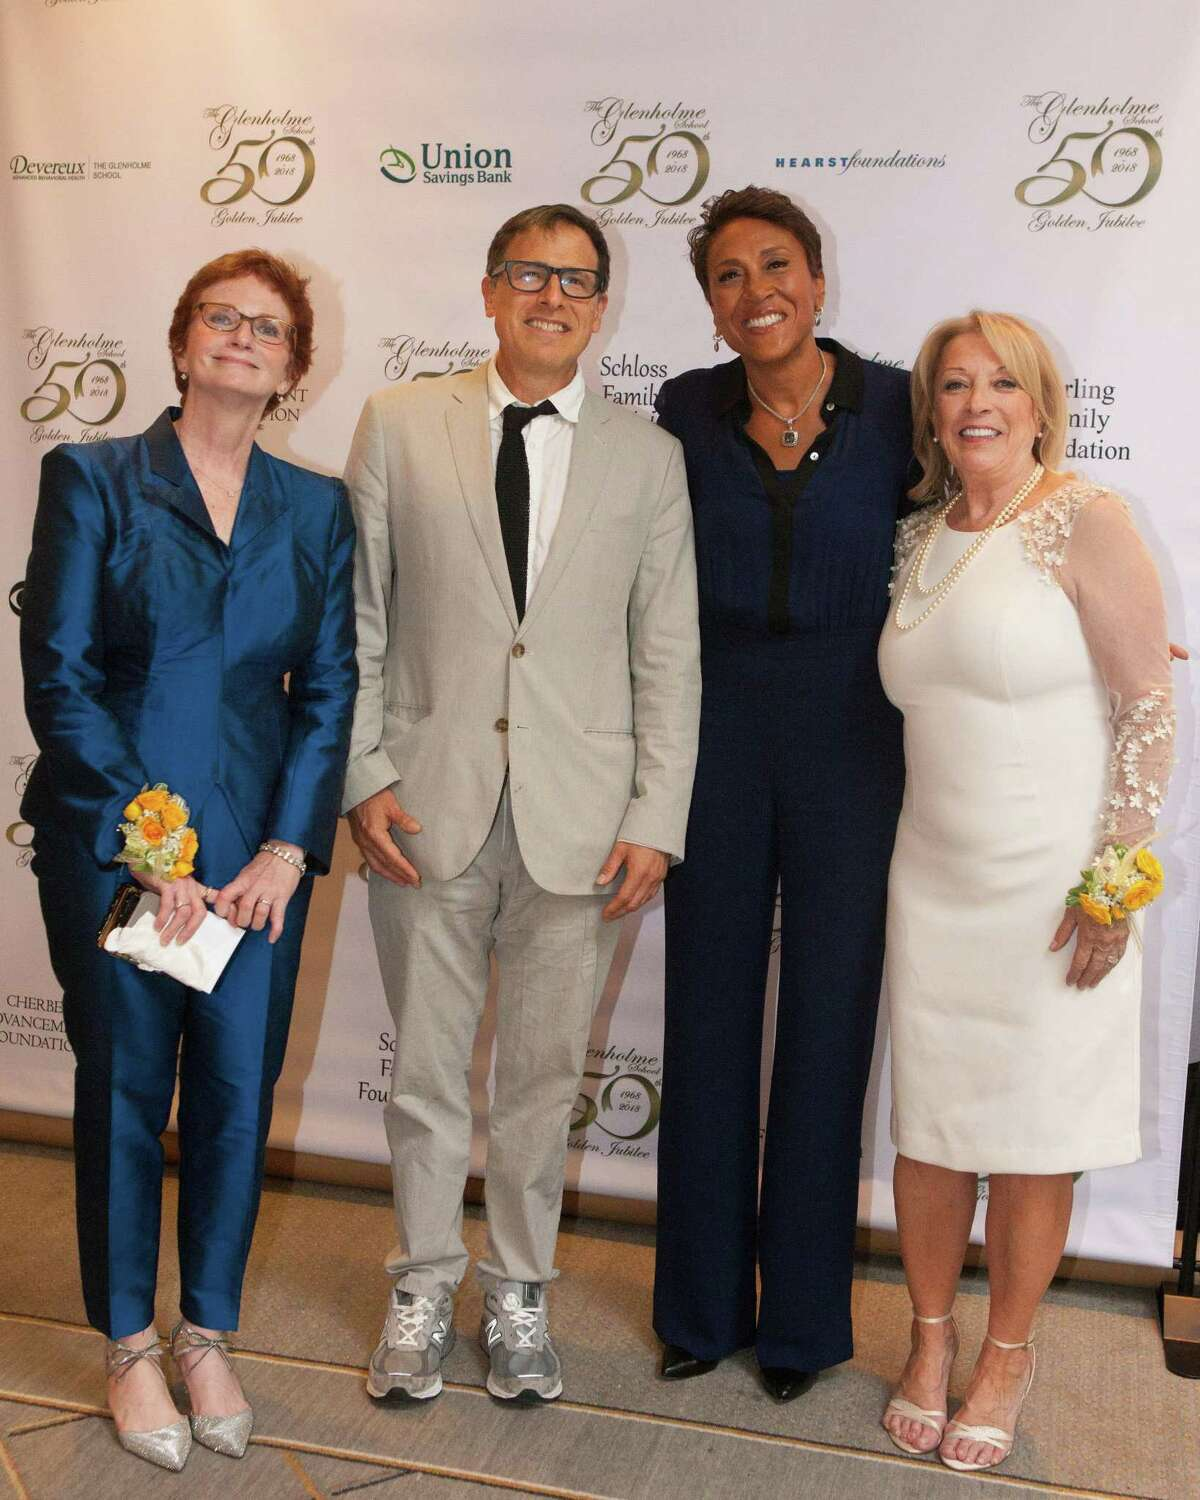 The Glenholme School in Washington recently hosted its 50th Jubilee Gala at Ethan Allen Hotel in Danbury. In attendance were, from left to right, Barbara Feeney, Glenholme Board Chairman, film director David O. Russell, guest emcee Robin Roberts of ABCs Good Morning America, and Glenholme Executive Director Maryann Campbell.